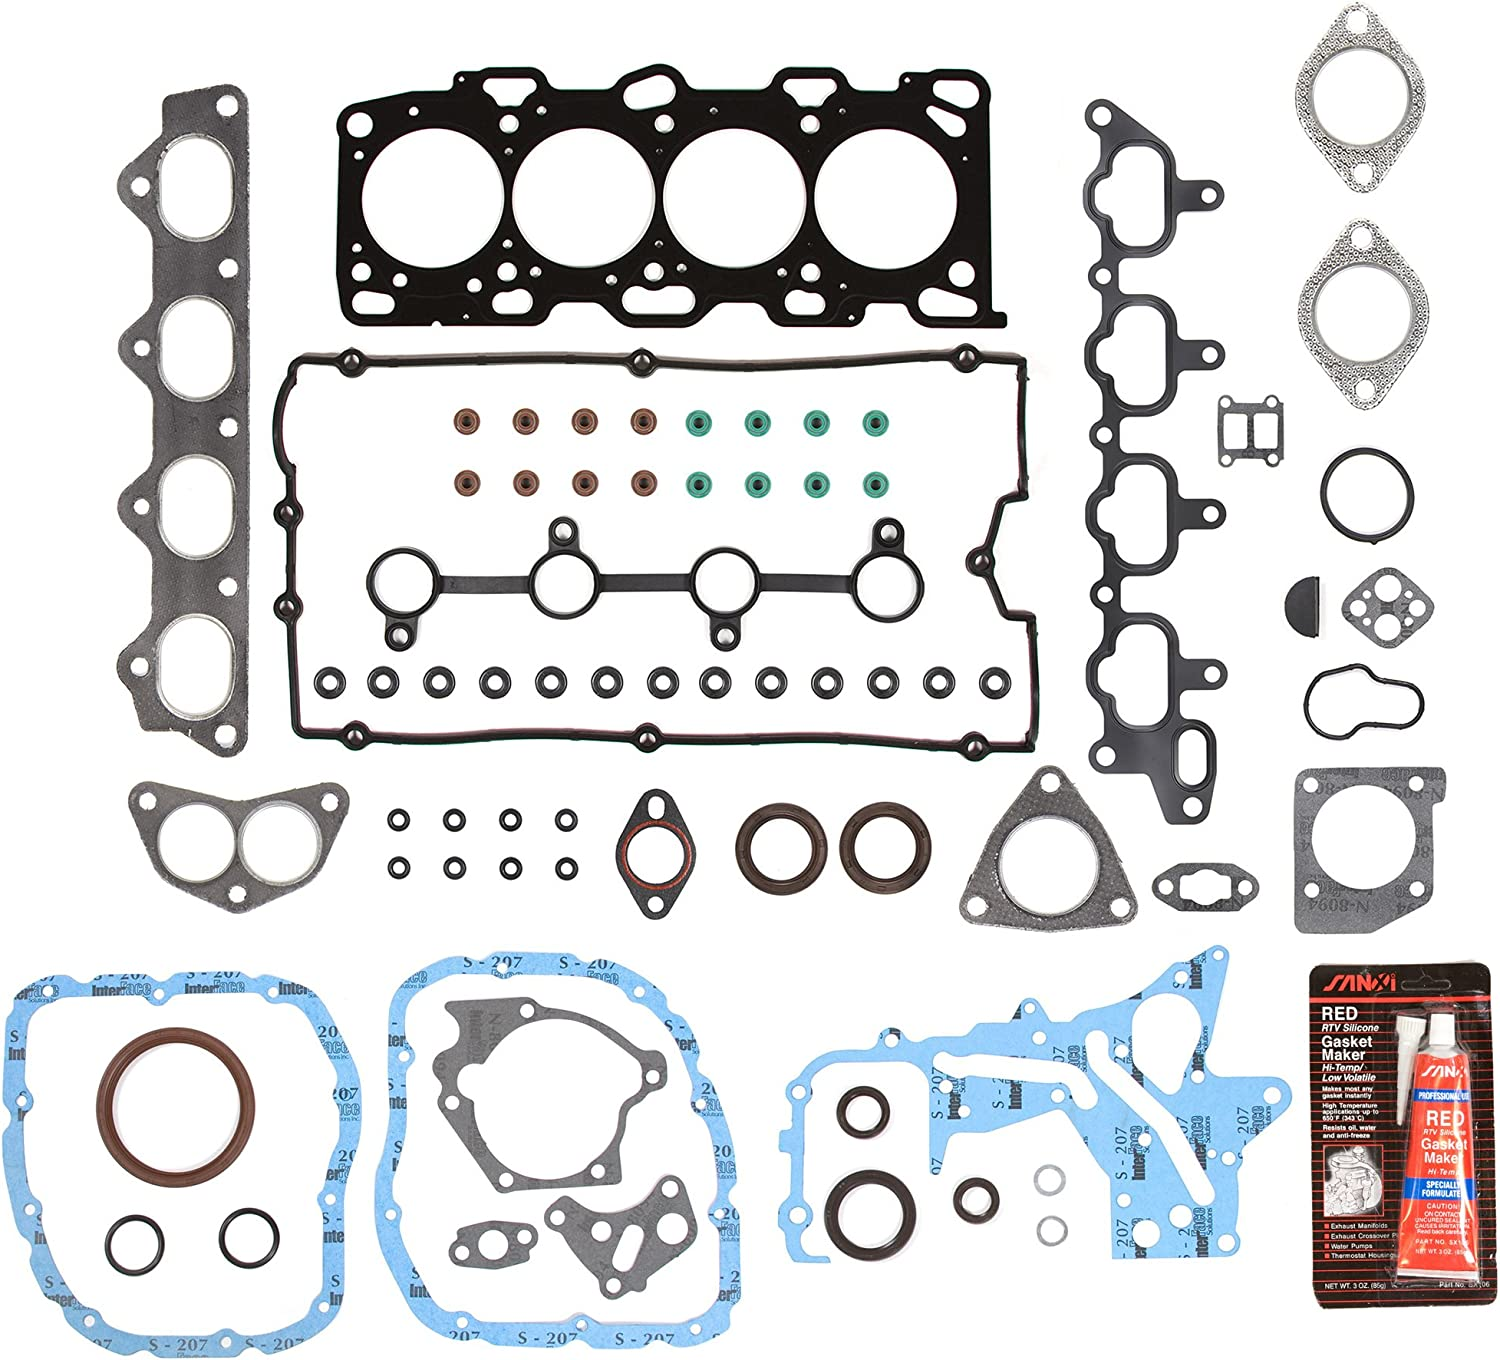 Cheap mail order specialty store Evergreen FS66025 Full Set Ranking TOP5 Gasket